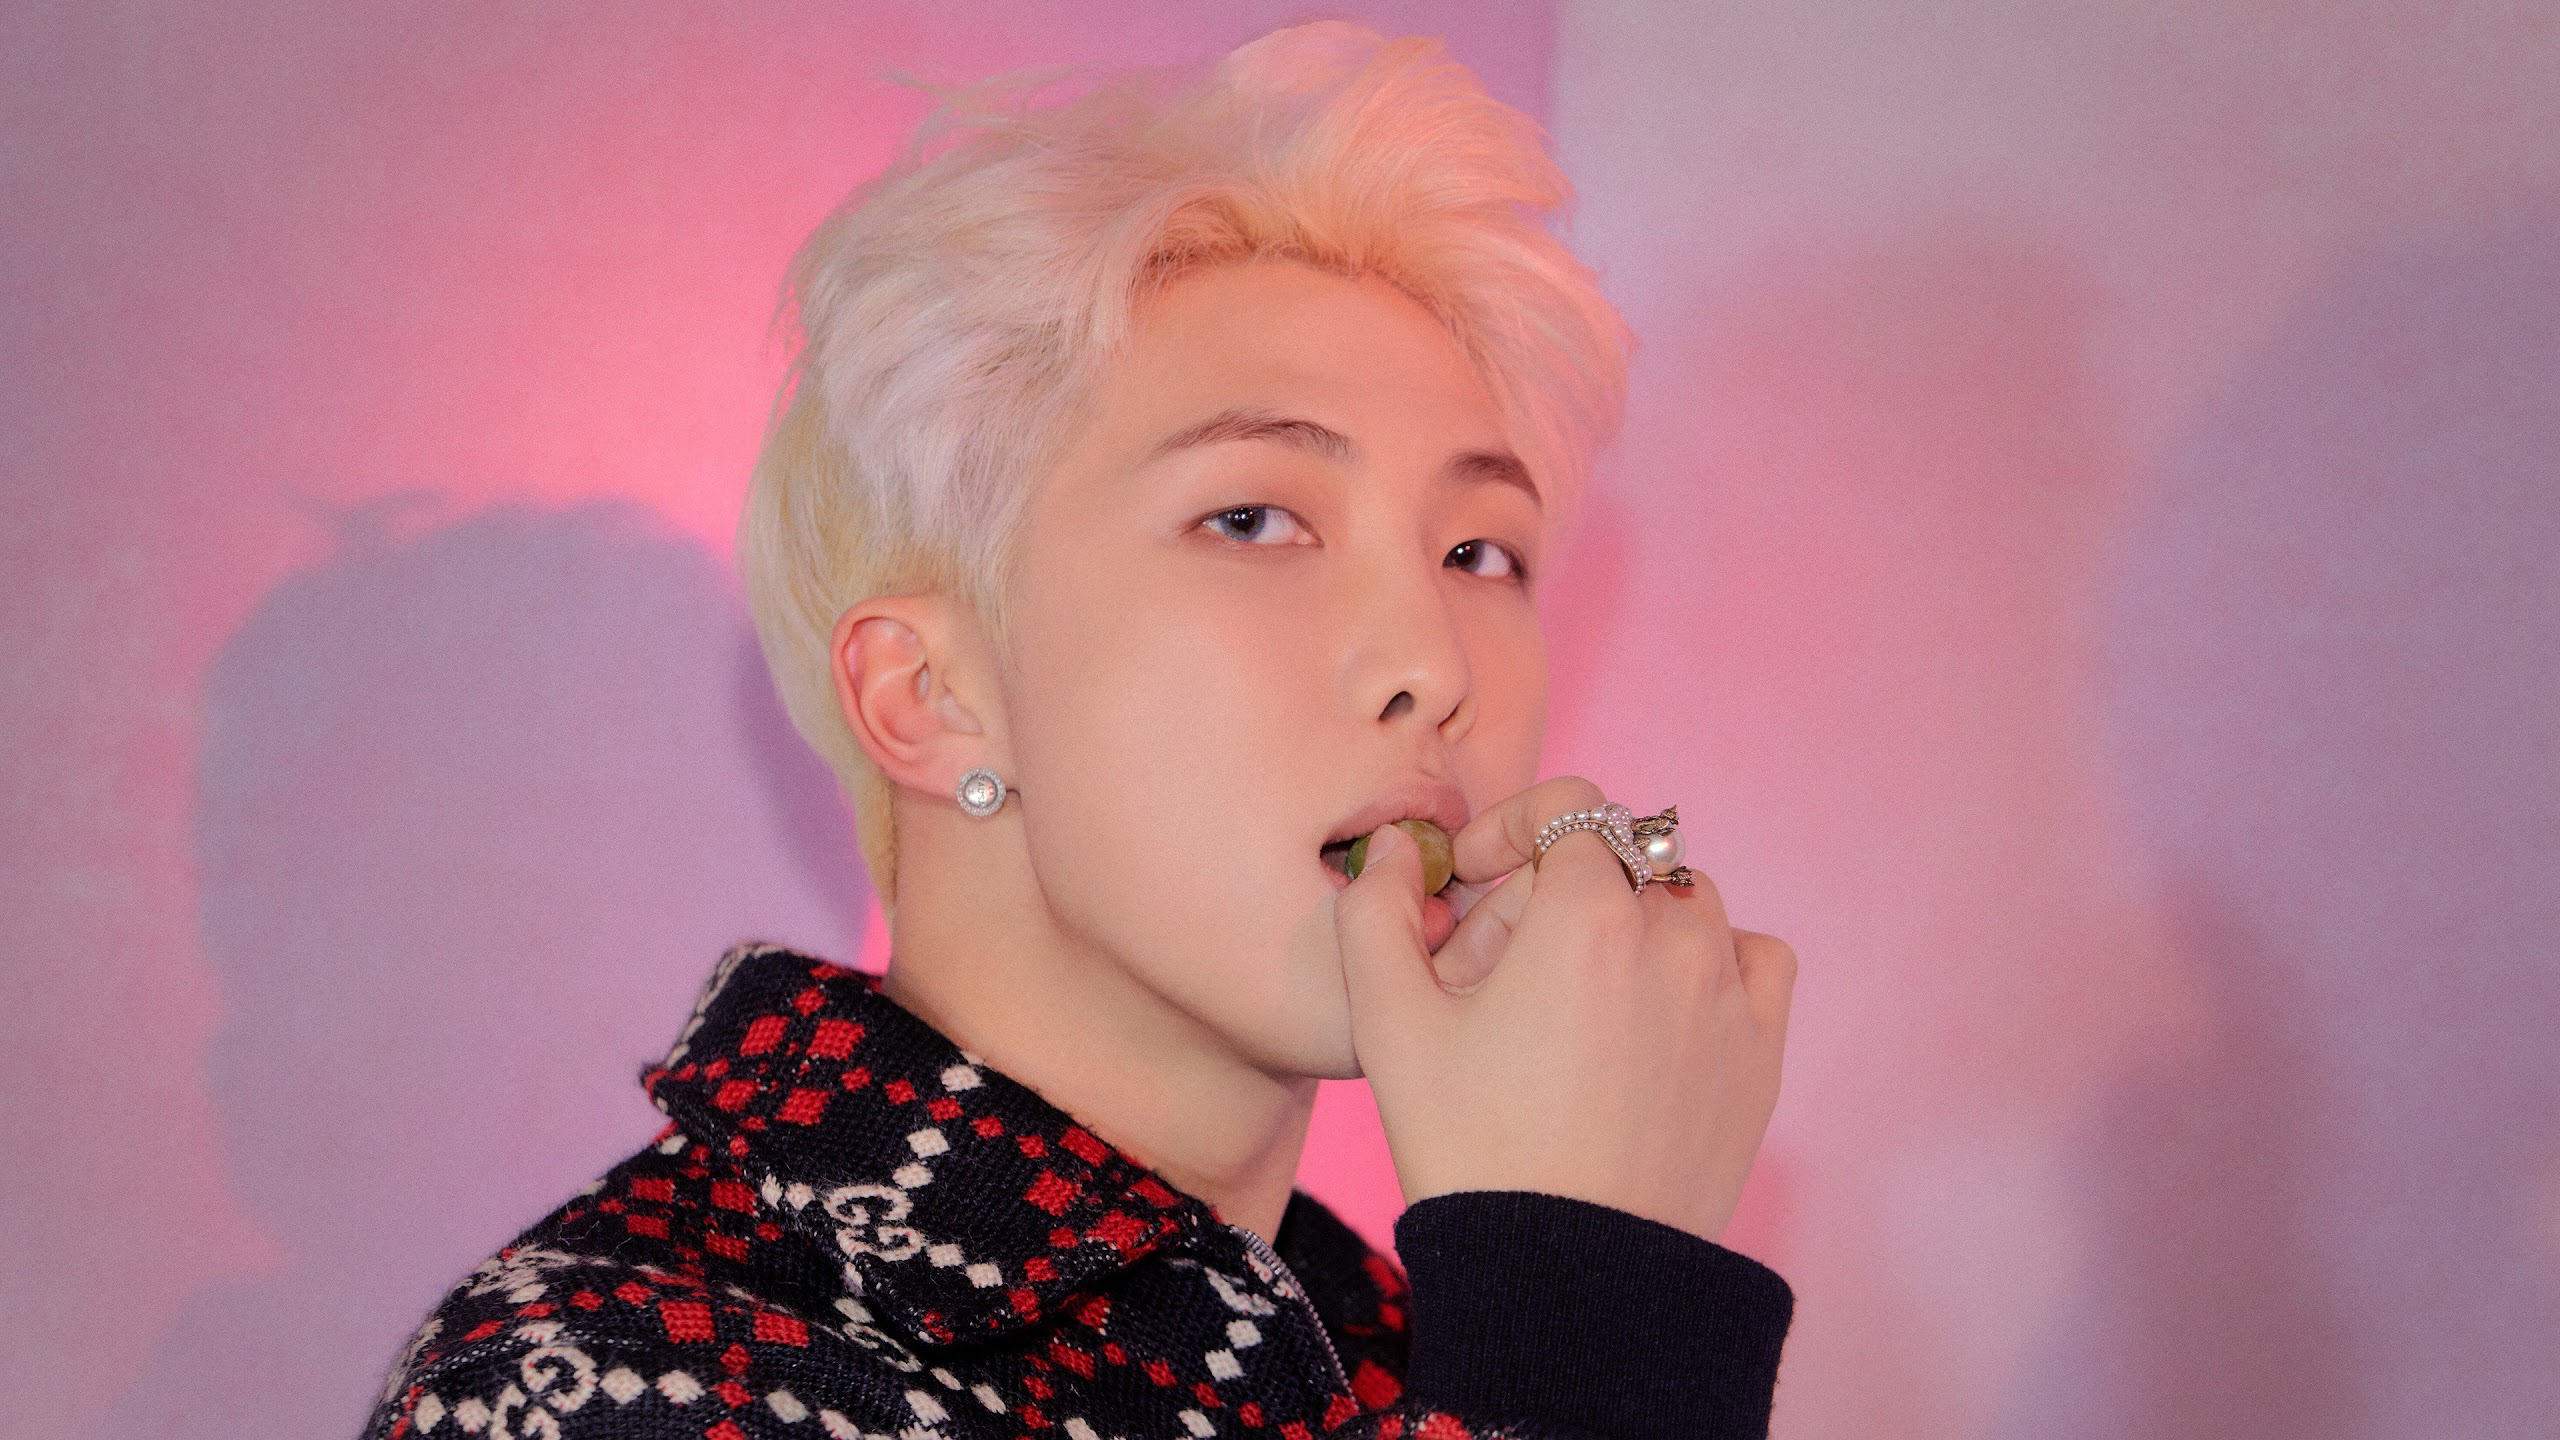 Rm Bts Map Of The Soul Persona 4k Wallpaper 44